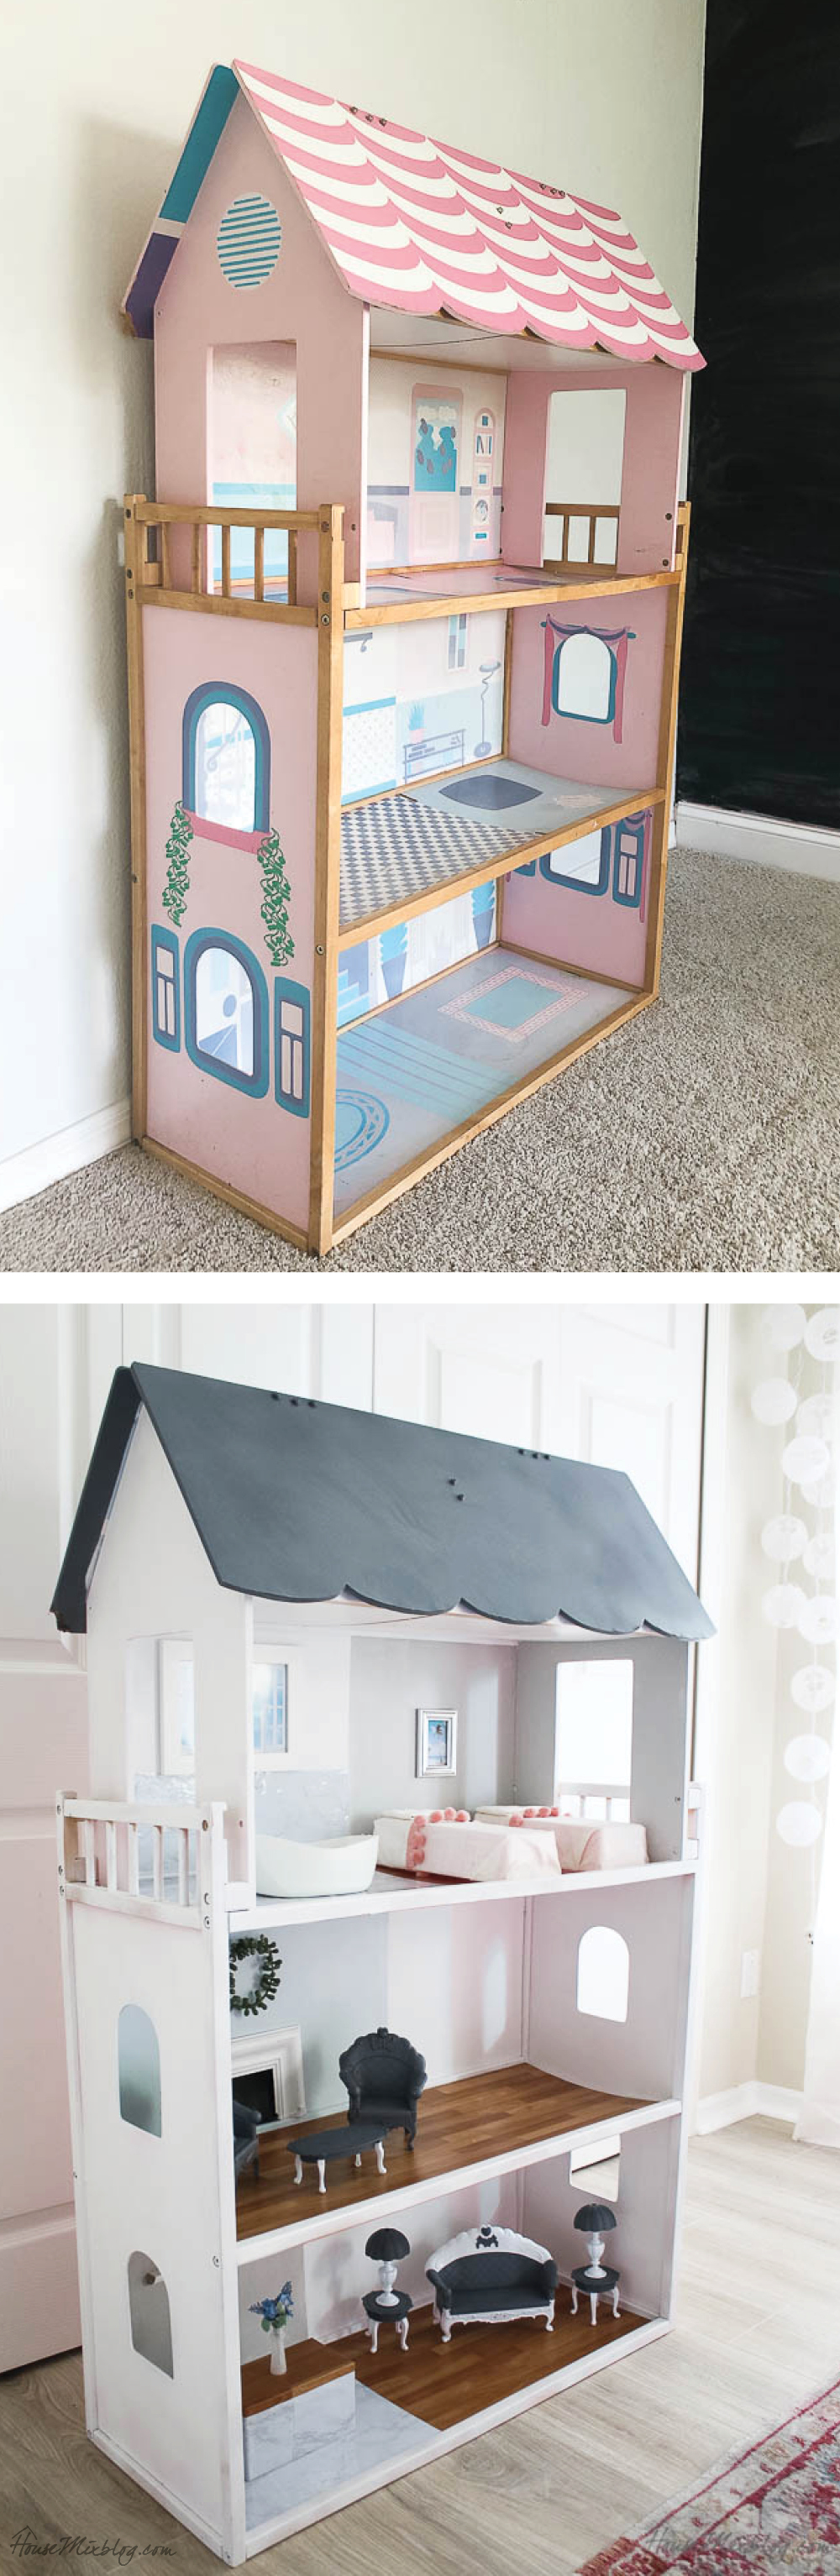 Before and after Barbie doll house makeover - spray paint and contact paper and DIY furniture.jpg